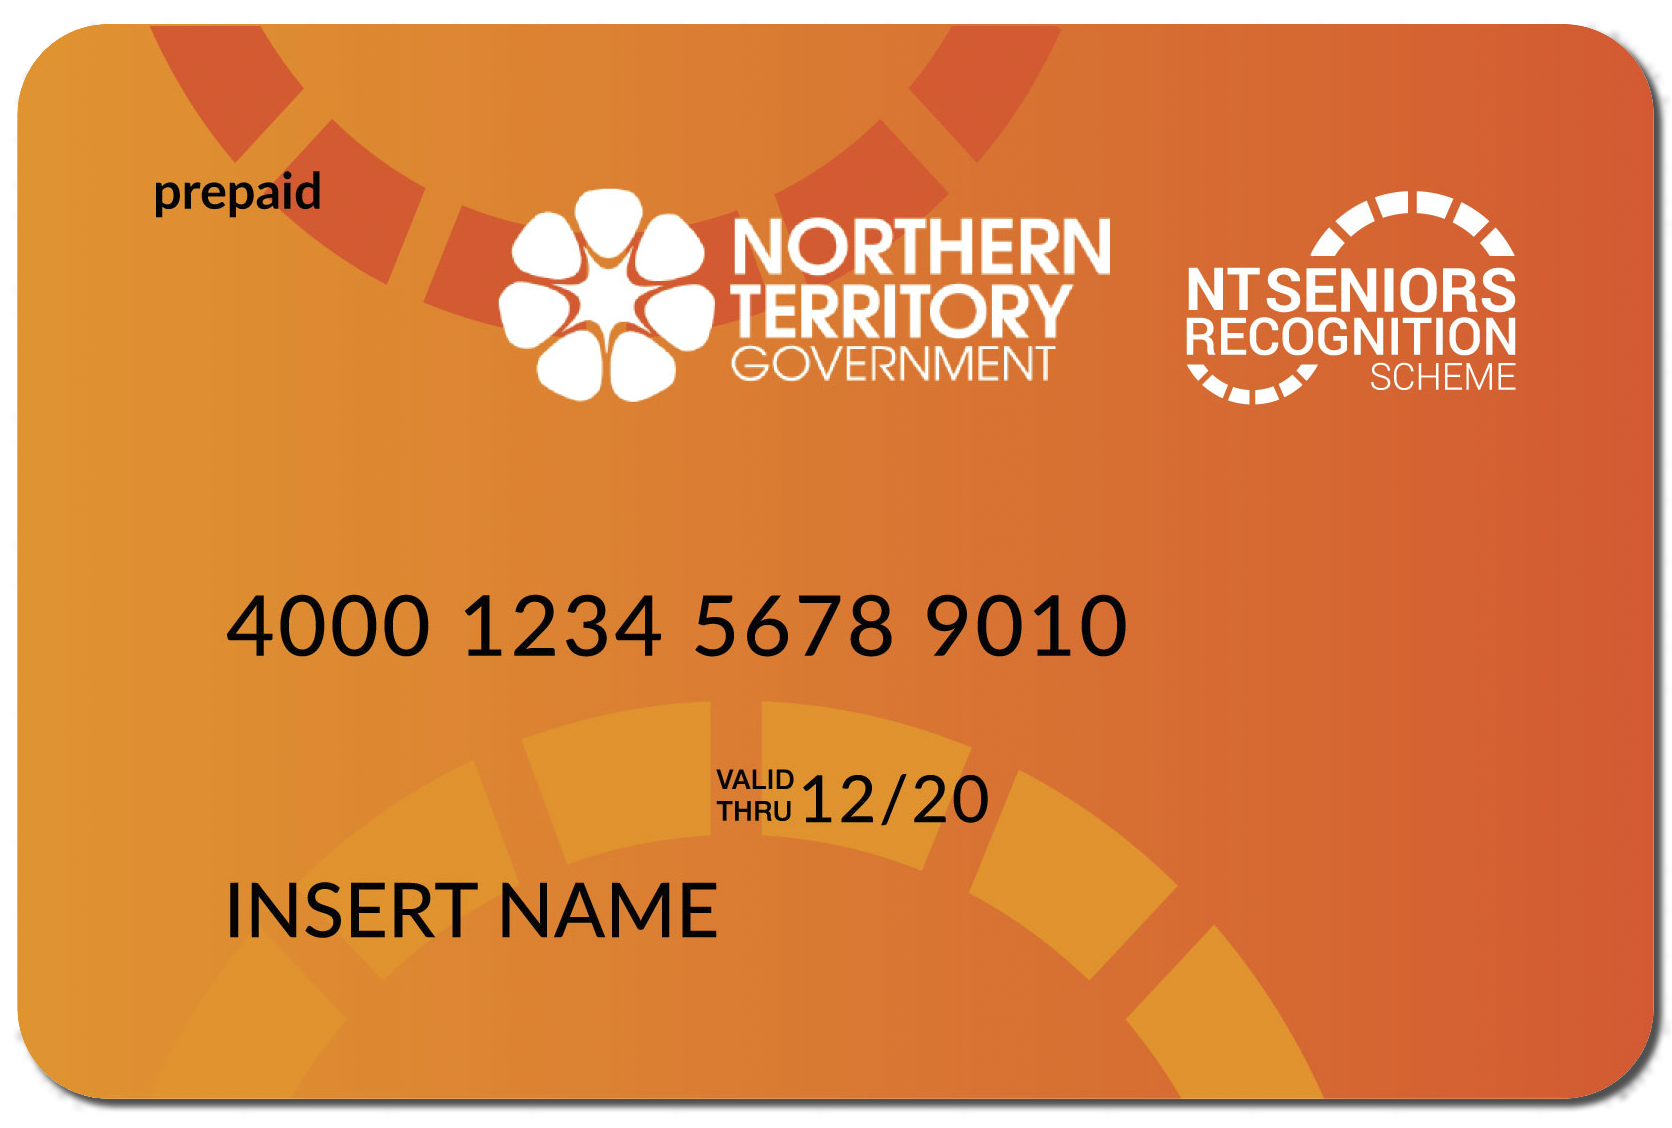 NT Seniors Recognition Scheme prepaid card launch